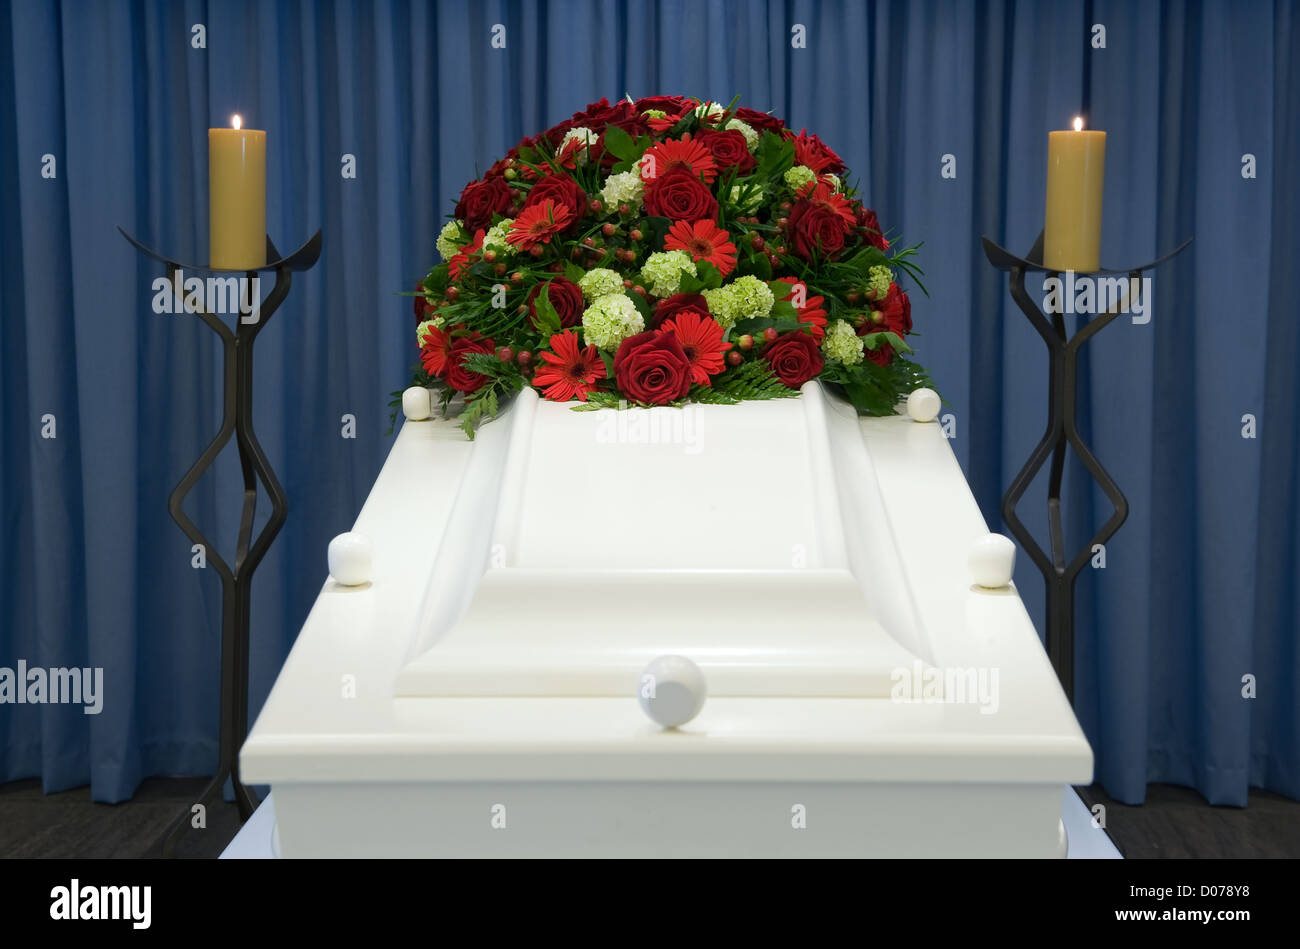 A white coffin in a mortuary with a flower arrangement - Stock Image